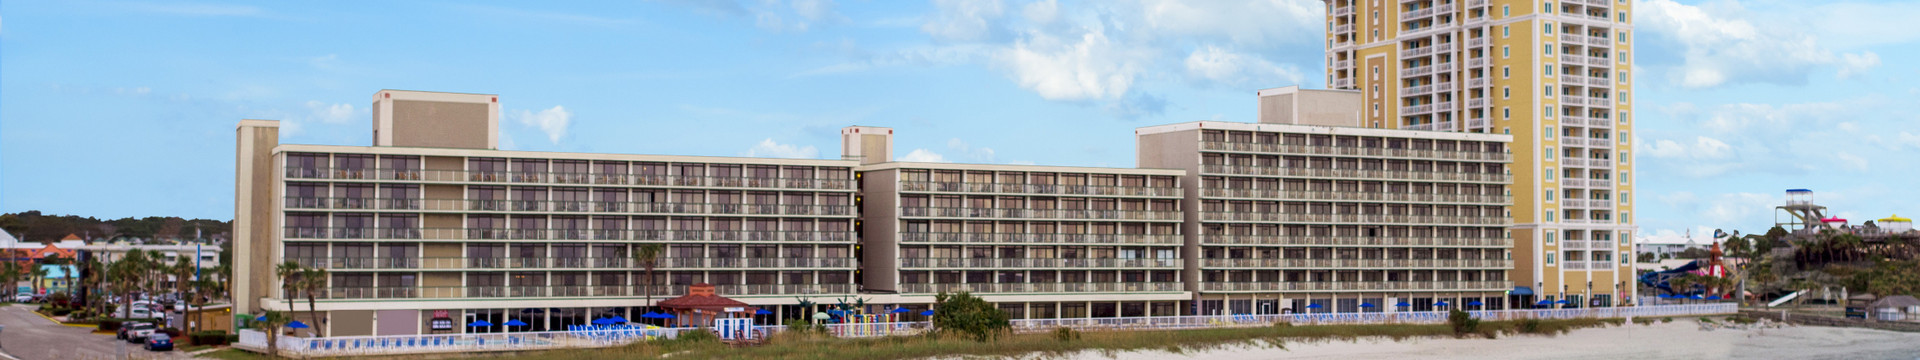 Special Discounts and Hotel Rates our Oceanfront Hotel in Myrtle Beach, SC | Westgate Myrtle Beach Oceanfront Resort